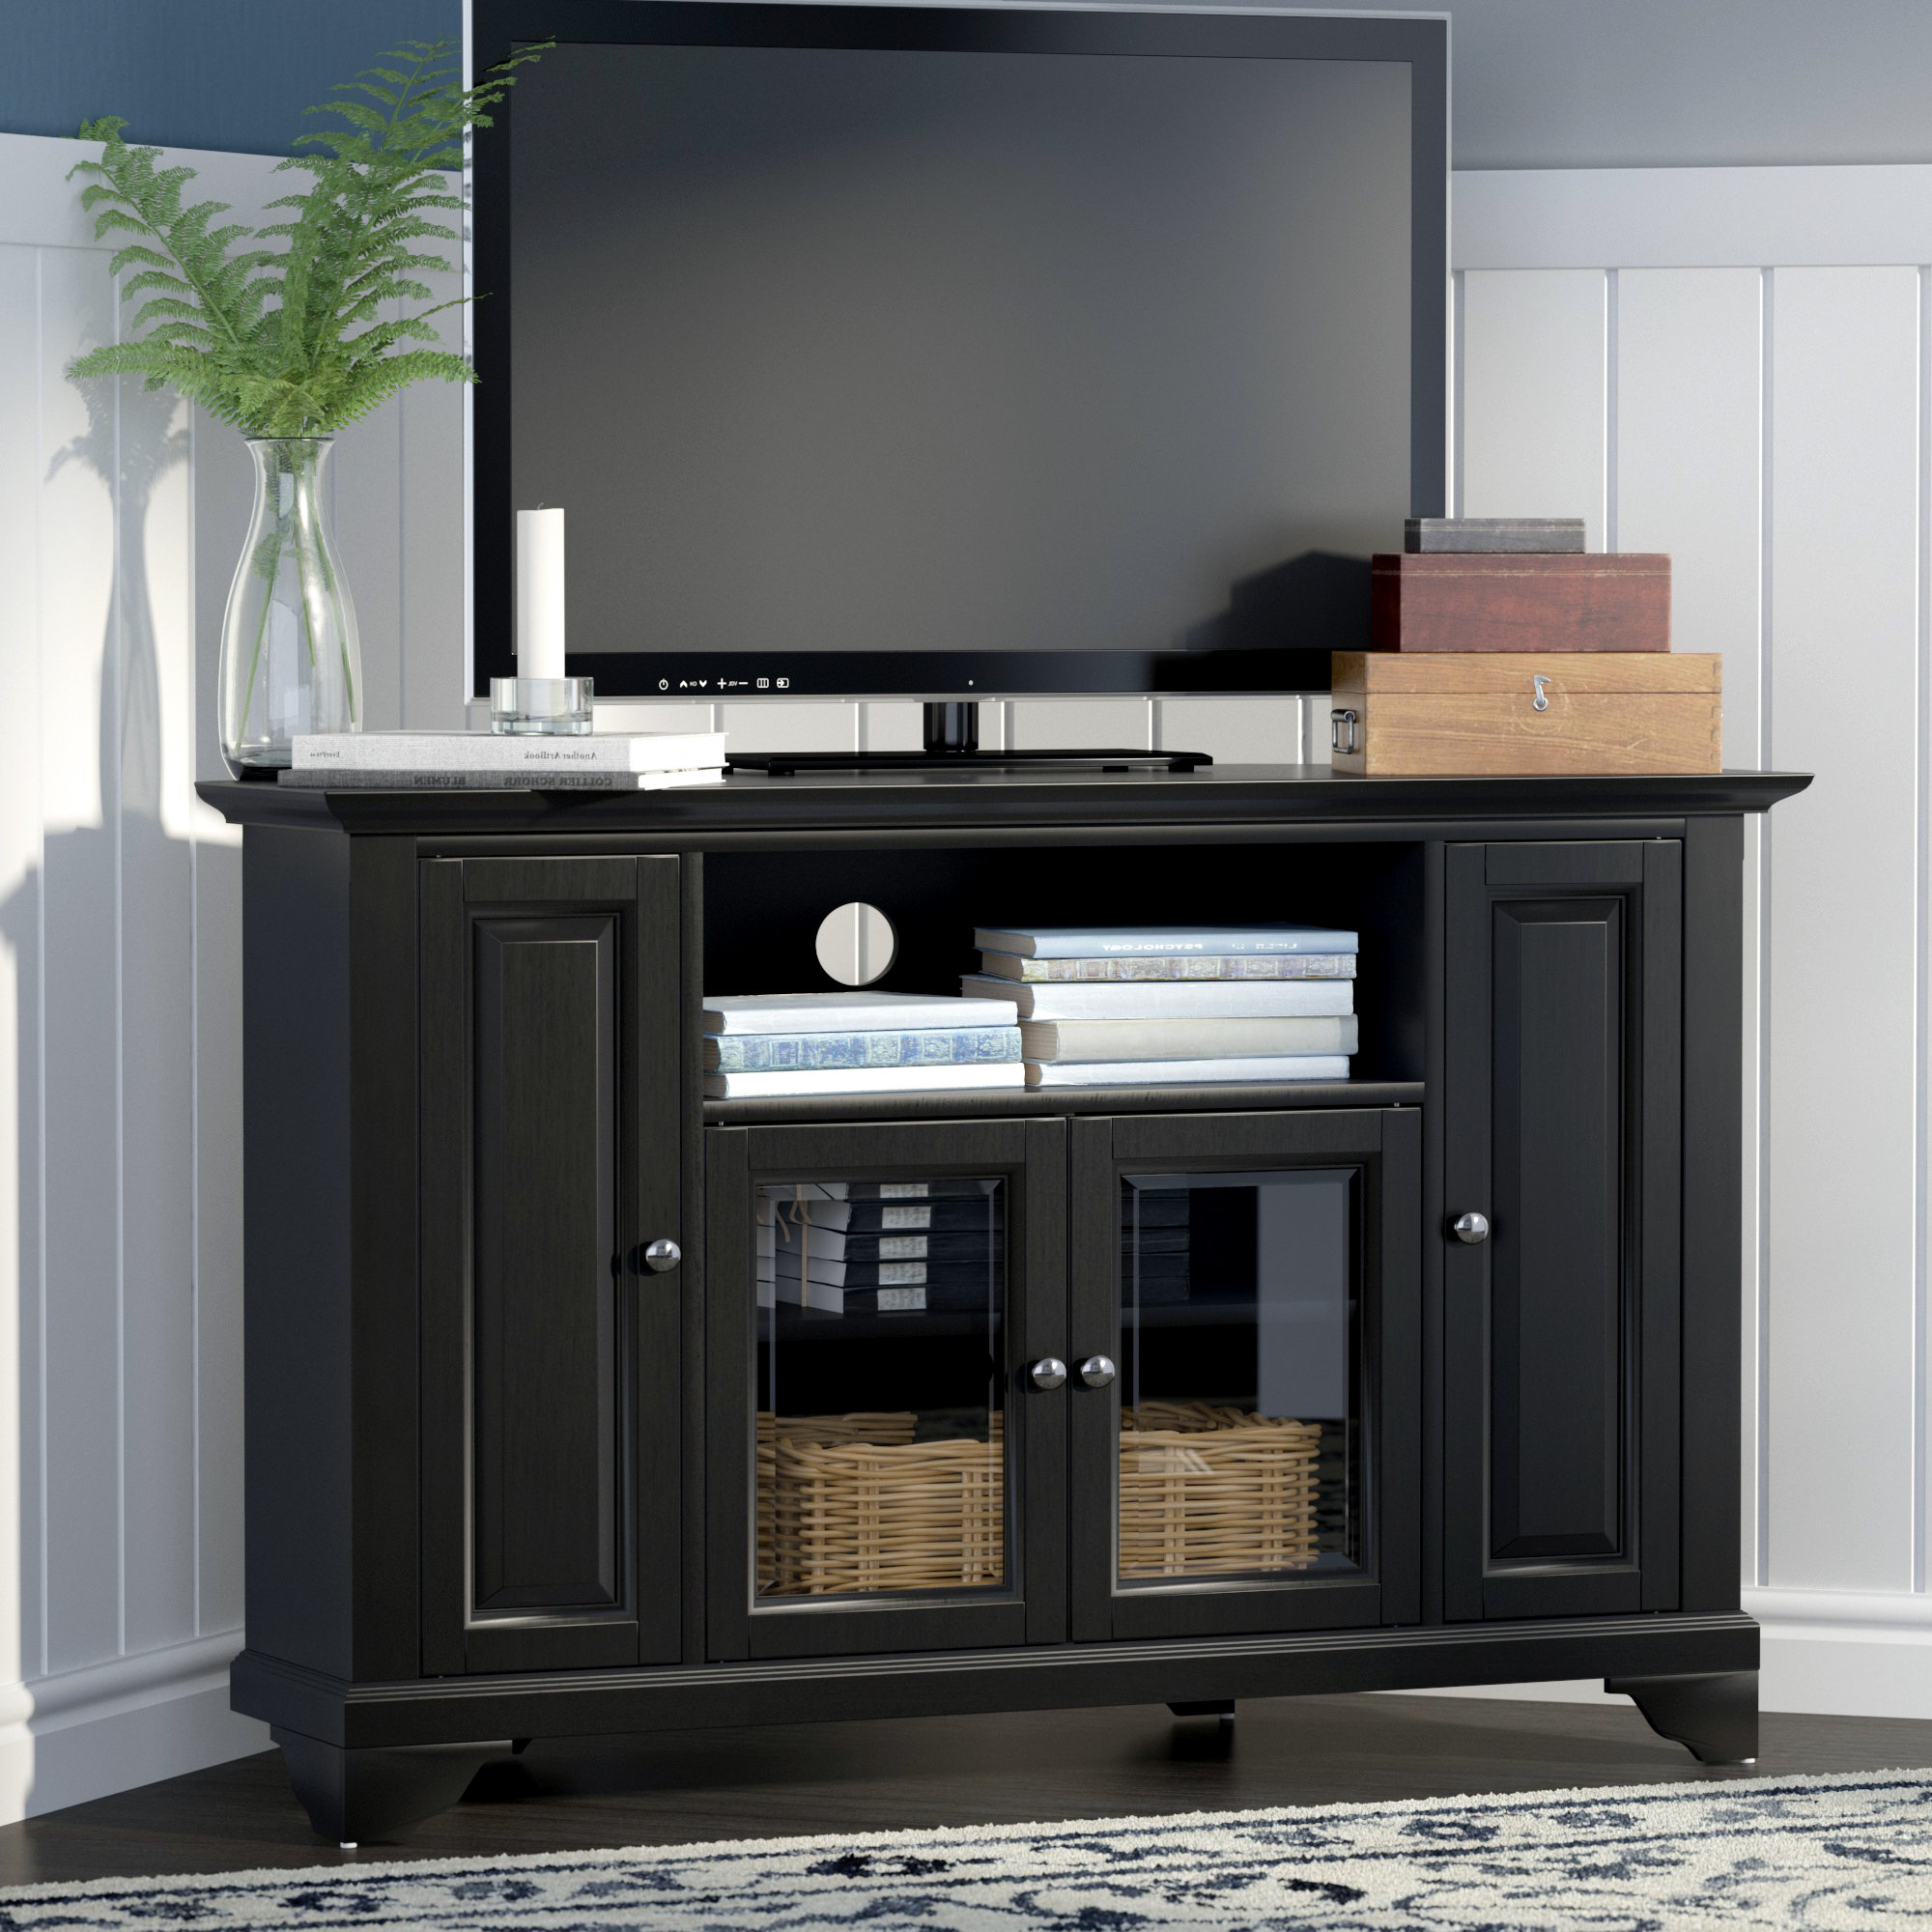 Widely Used Corner Tv Stands You'll Love Regarding Tv Stands For Corner (View 16 of 20)